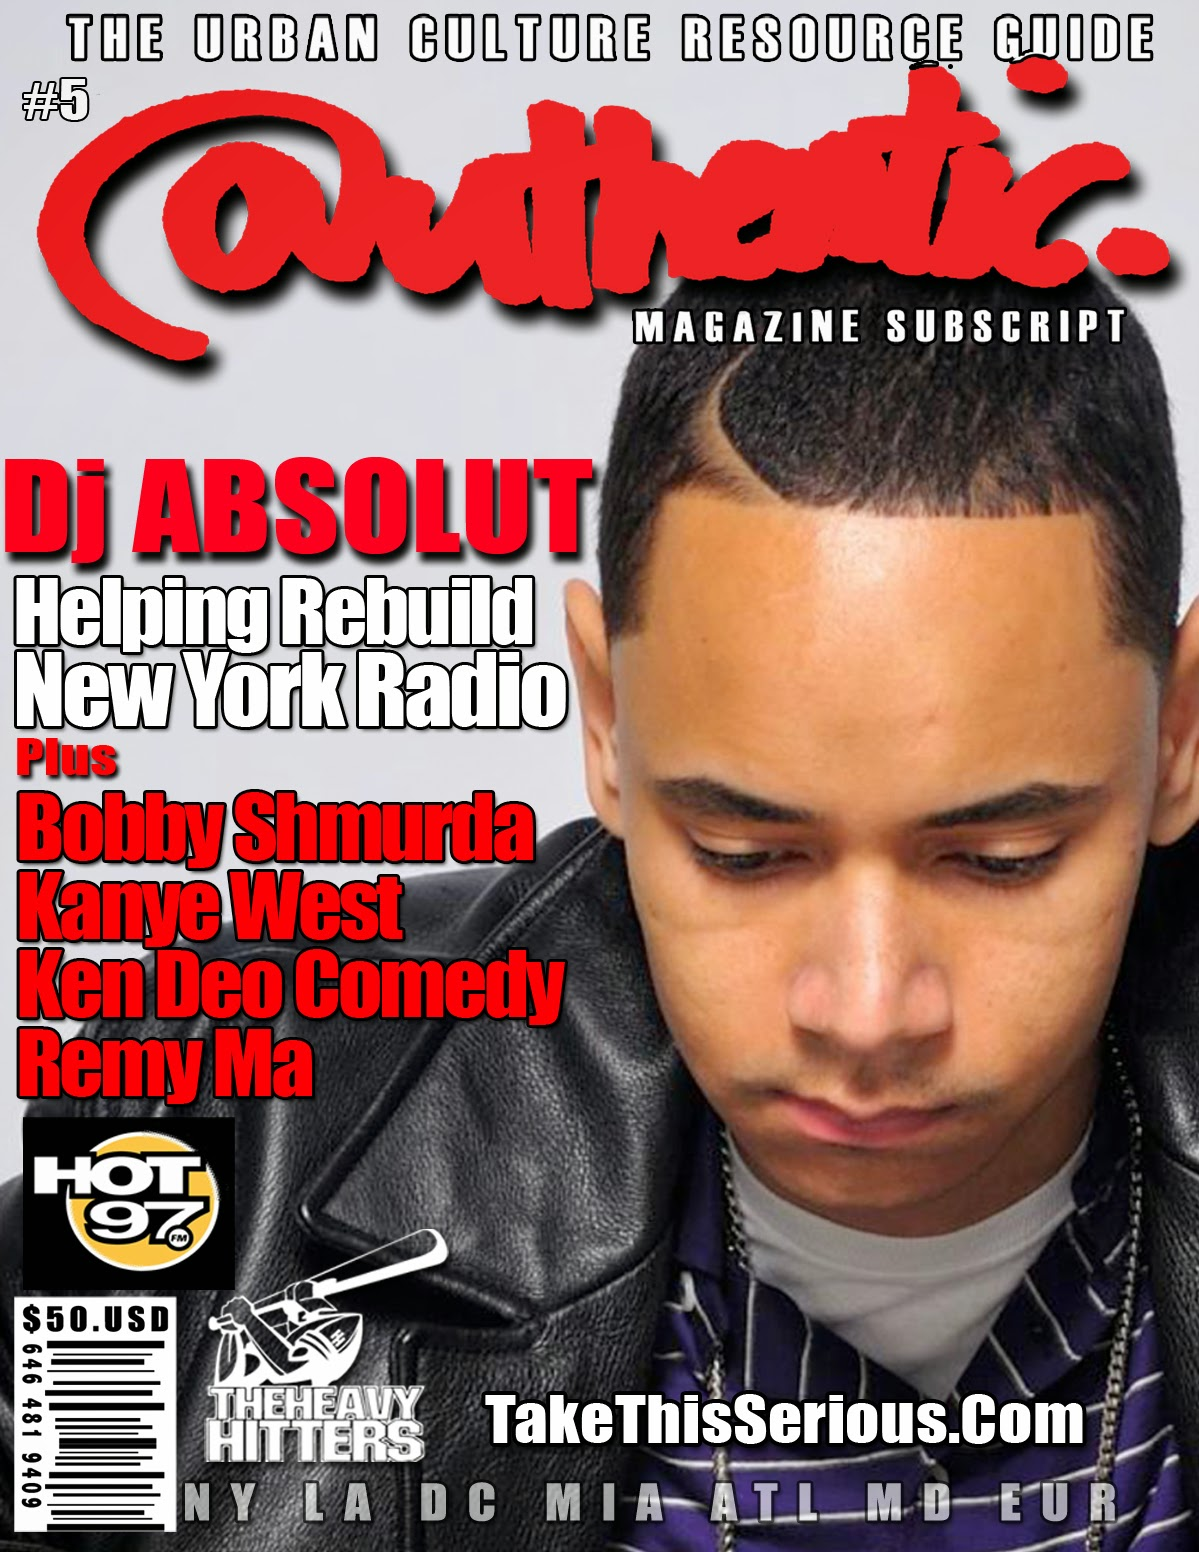 authentic magazine ken deo new york city DJ ABSOLUT ON HOT 97 authenticx.com